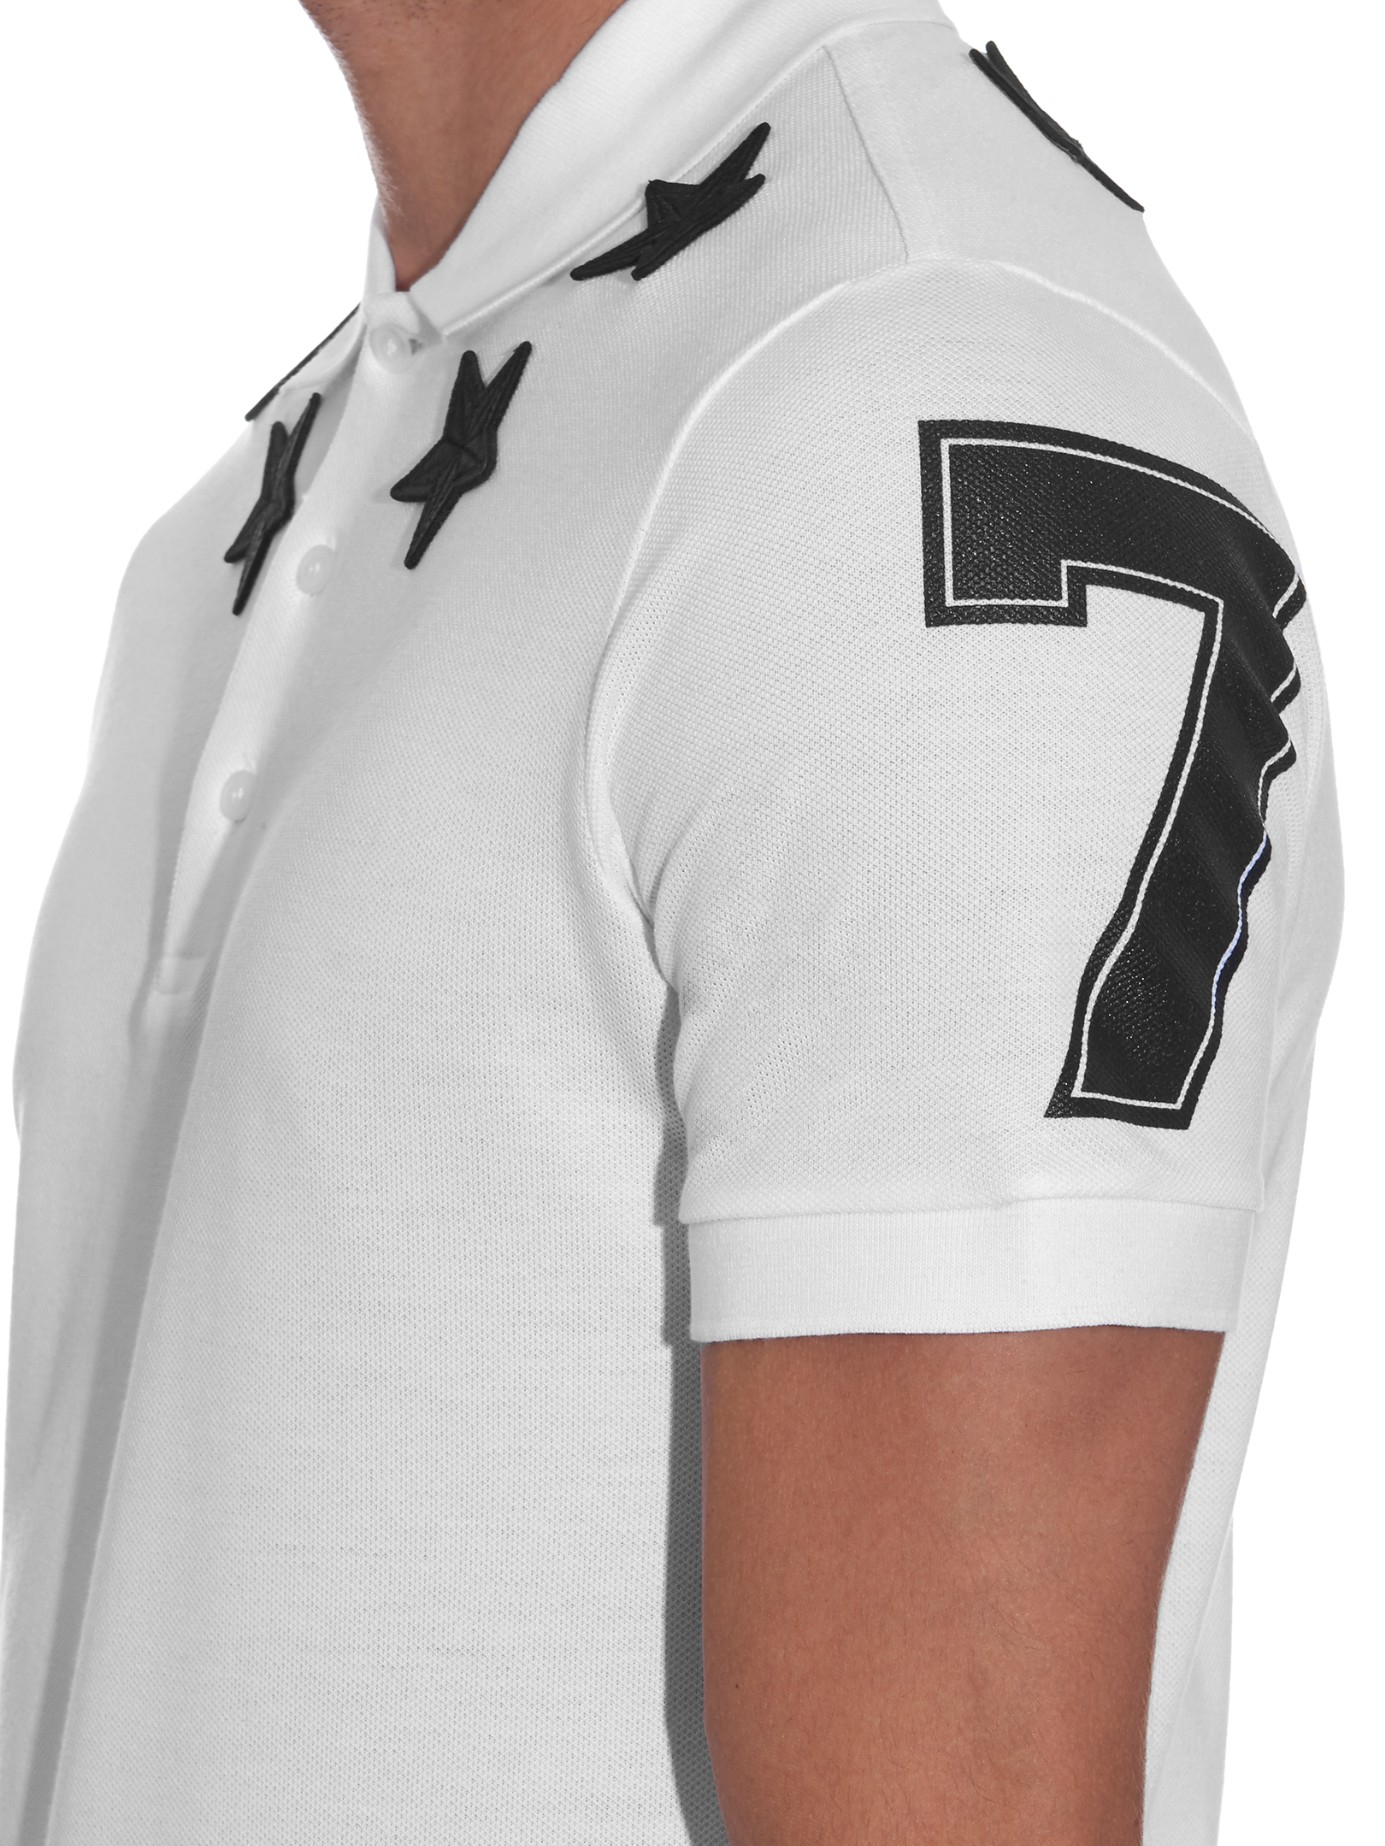 Givenchy cuban fit star patch polo shirt in white for men for Givenchy star t shirt